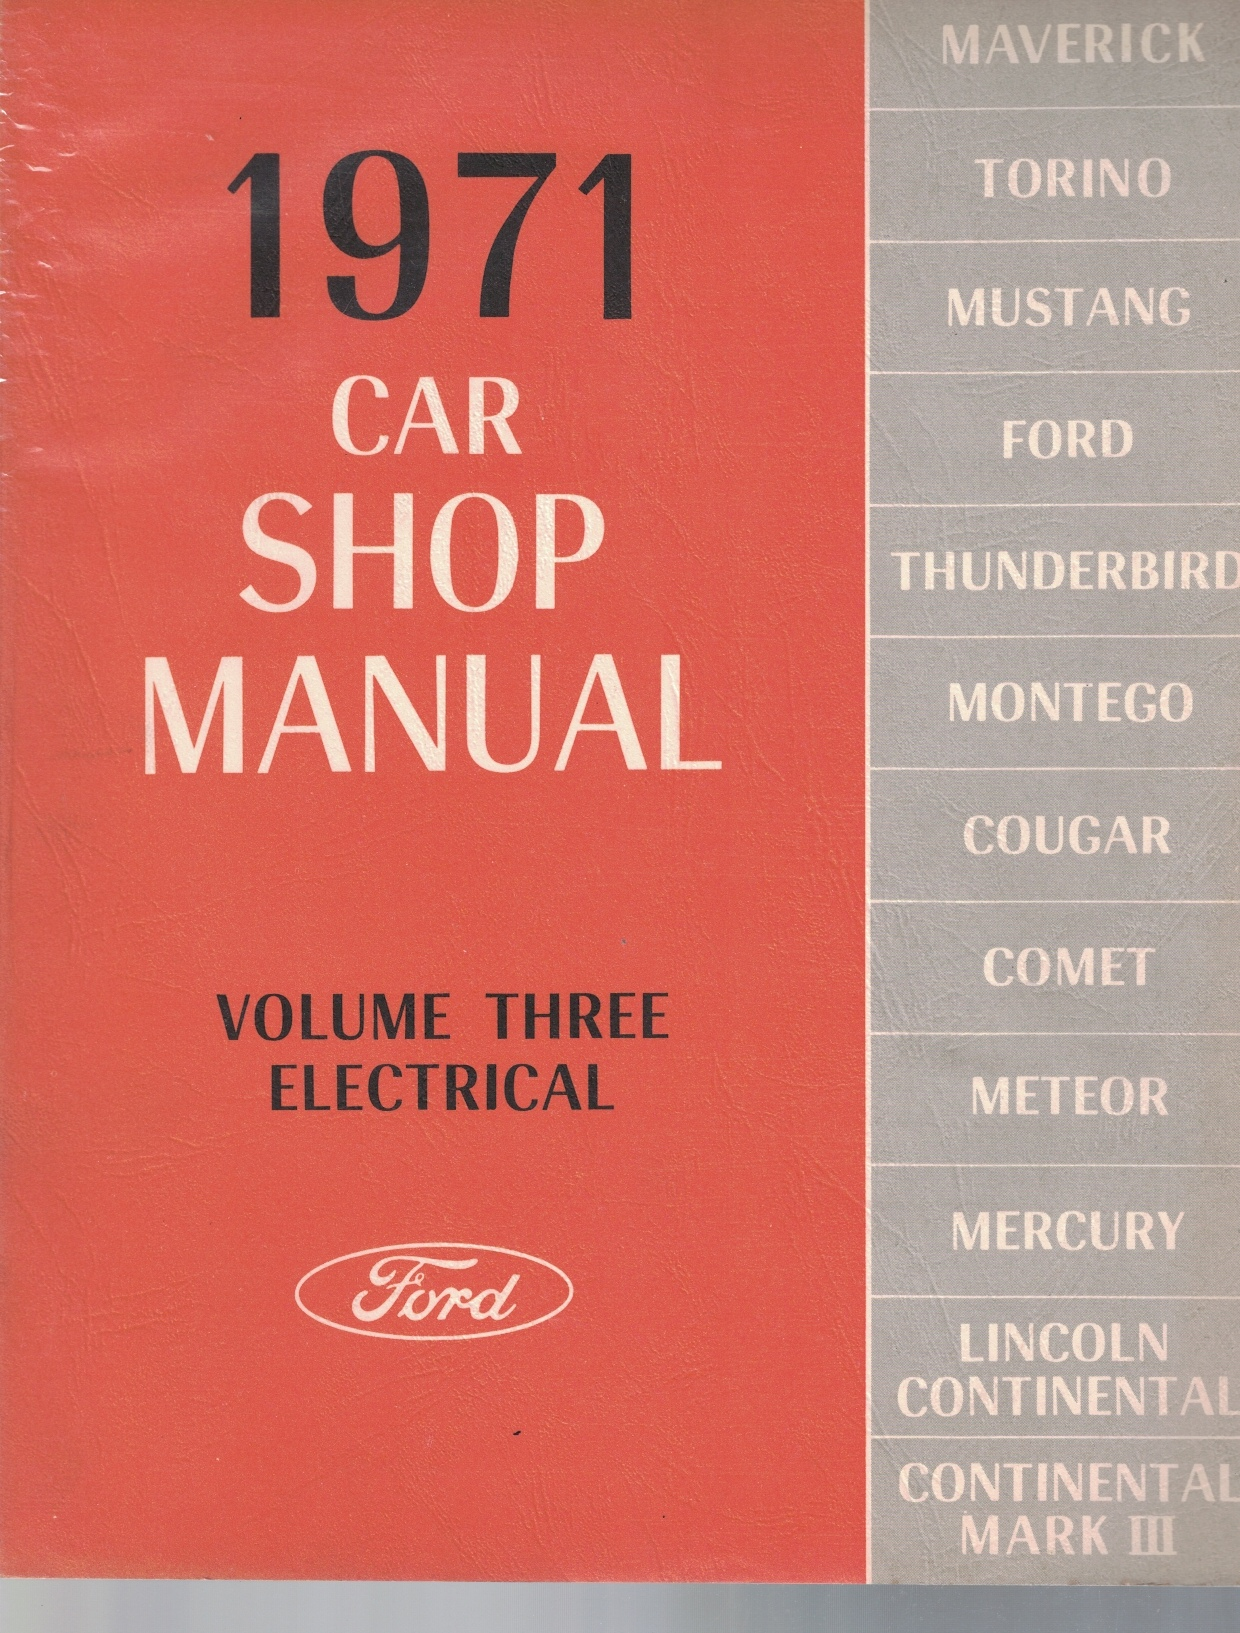 Image for 1971 Ford / Mercury / Lincoln Car Shop Manual, Volume 3: Electrical [Original Service Manual] [One Volume Only]